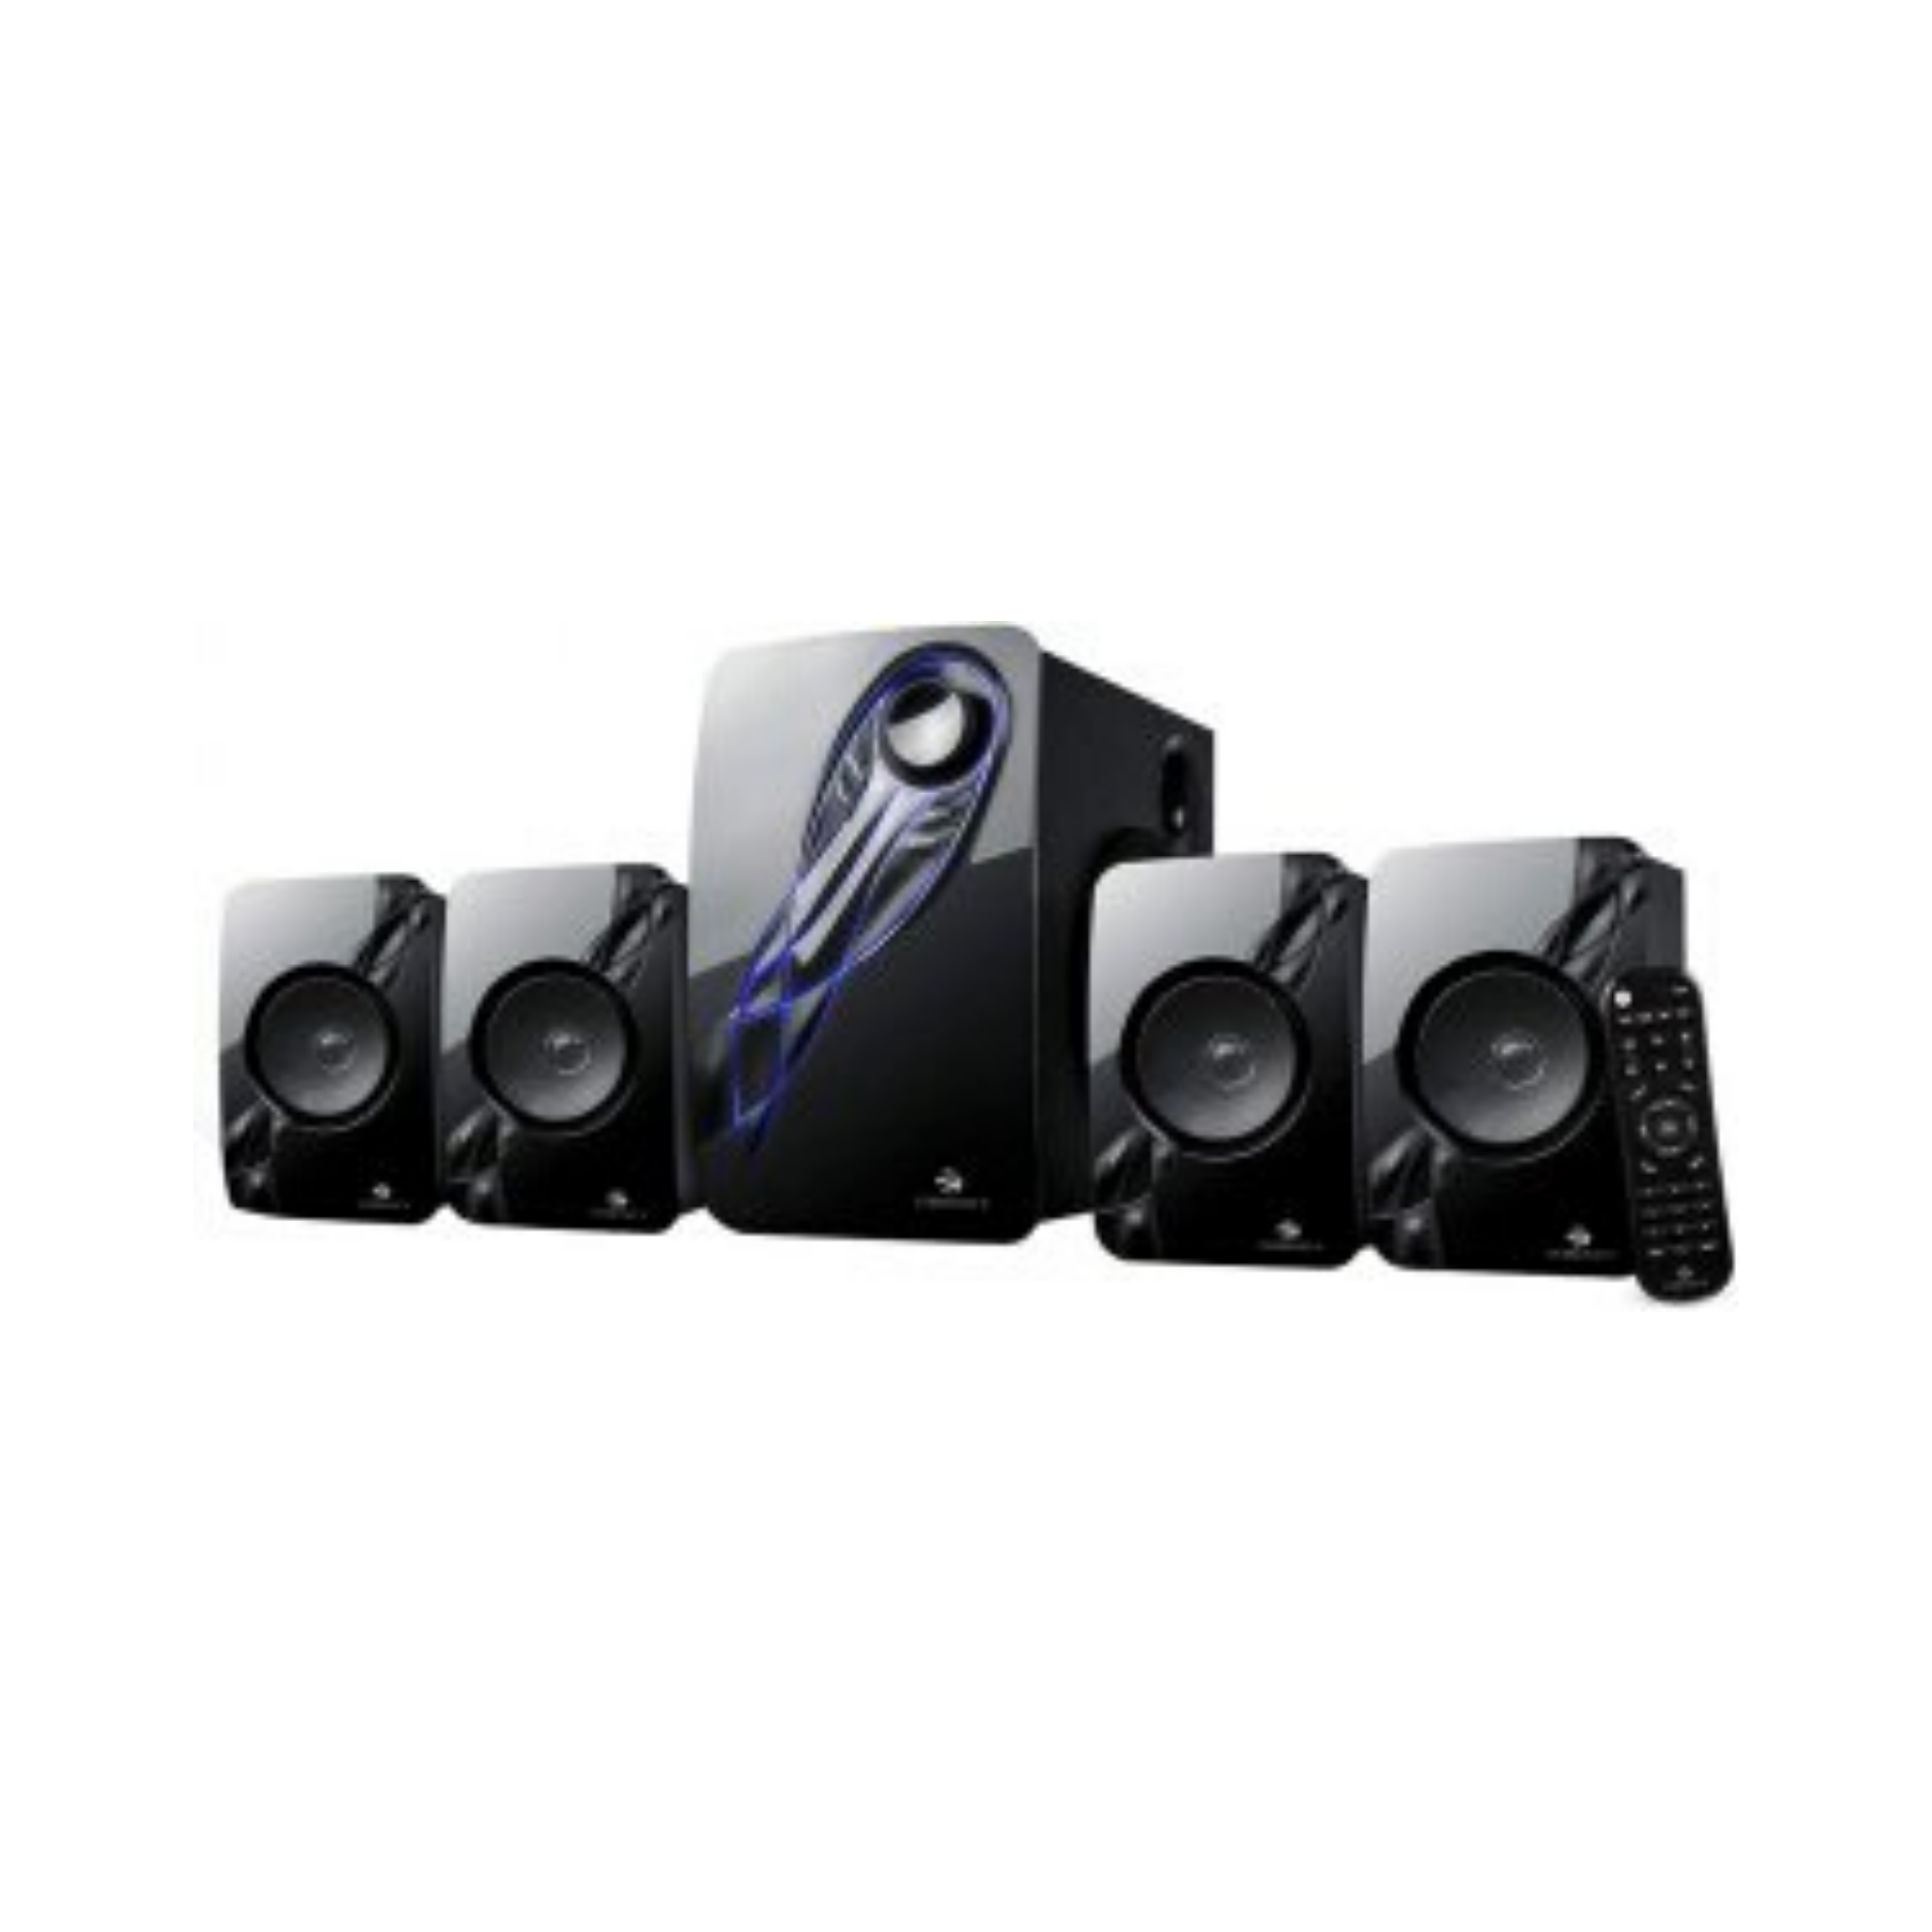 Zebronics Electro 4.1 multimedia speaker with multi connectivity options like BT/SD/USB/MMC with AUX support